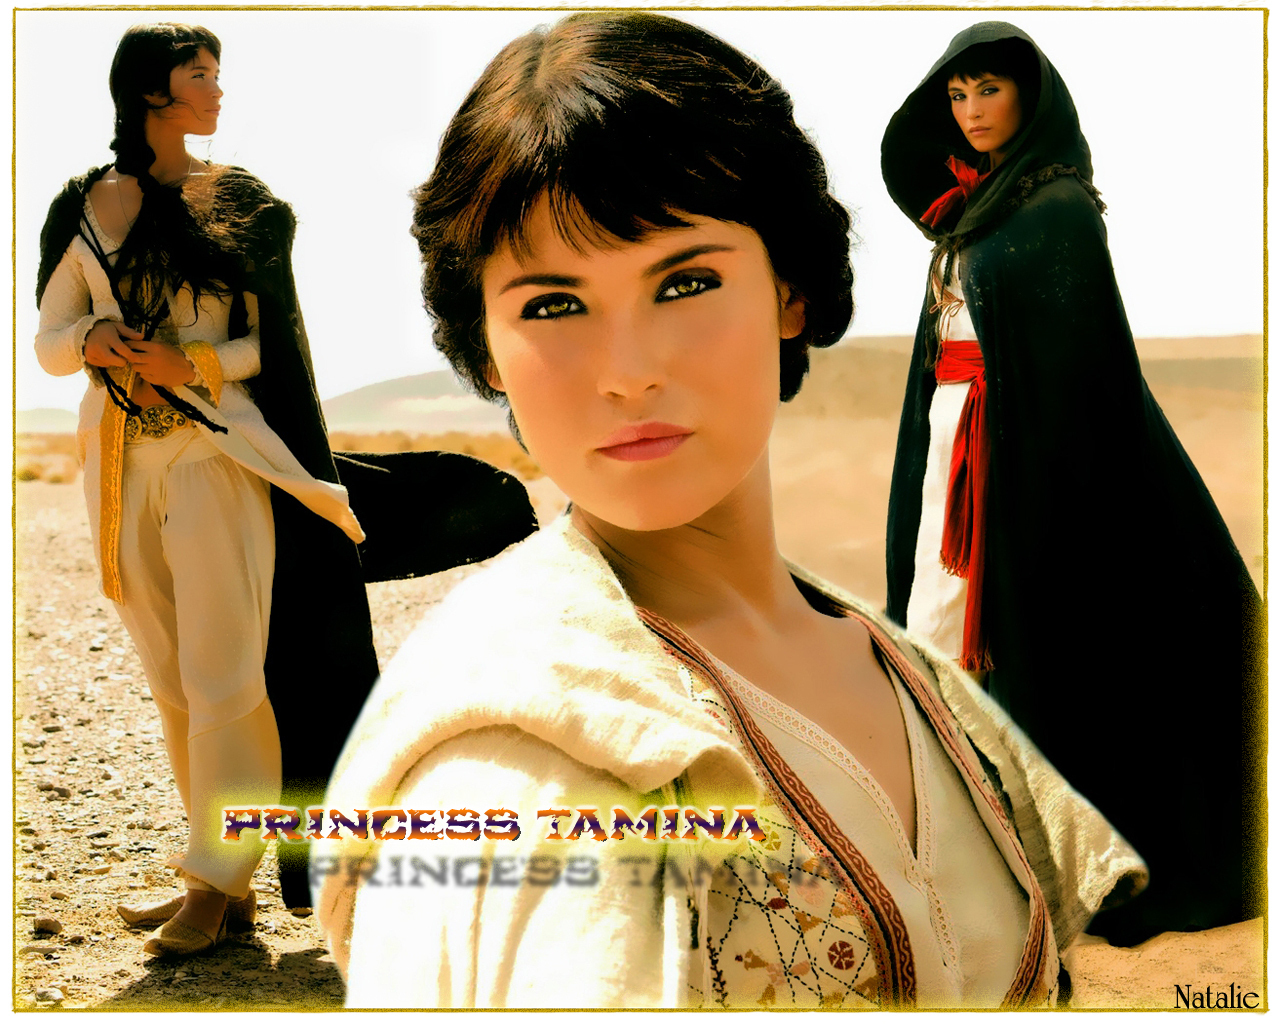 Prince of Persia: The Sands of Time images Princess Tamina ...